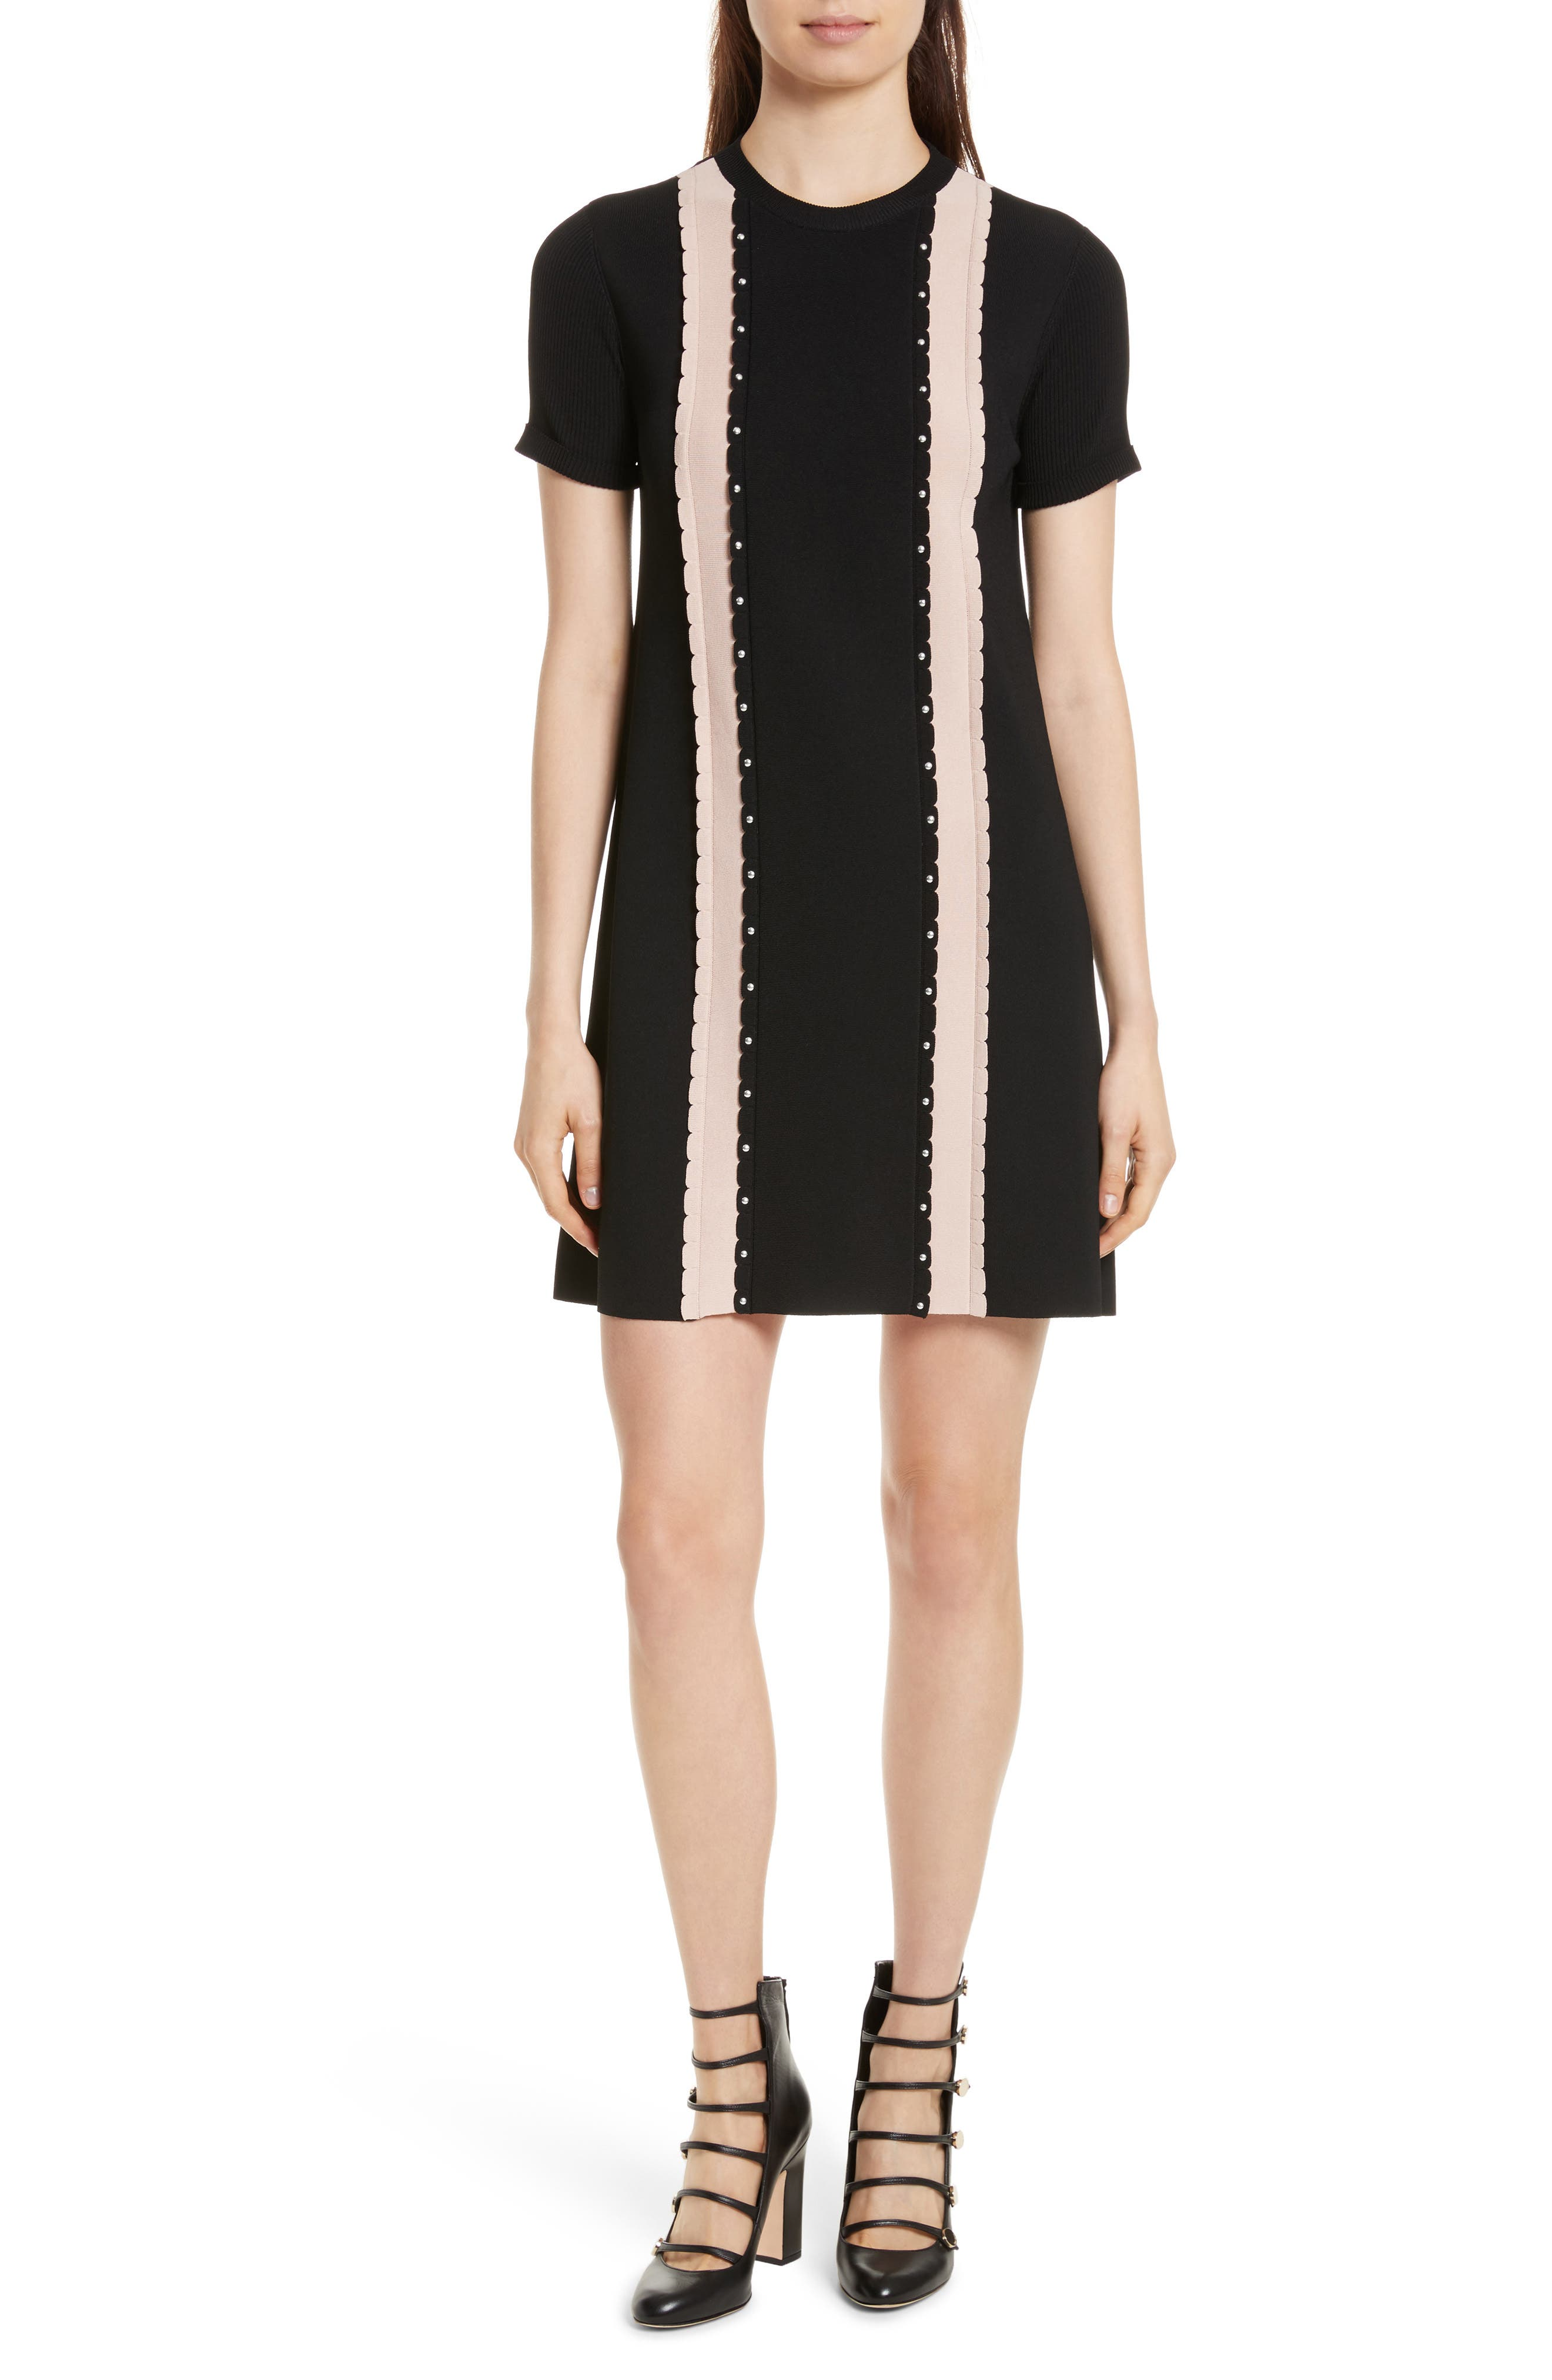 Scallop Stretch Knit Dress,                             Main thumbnail 1, color,                             Nero/ Nudo